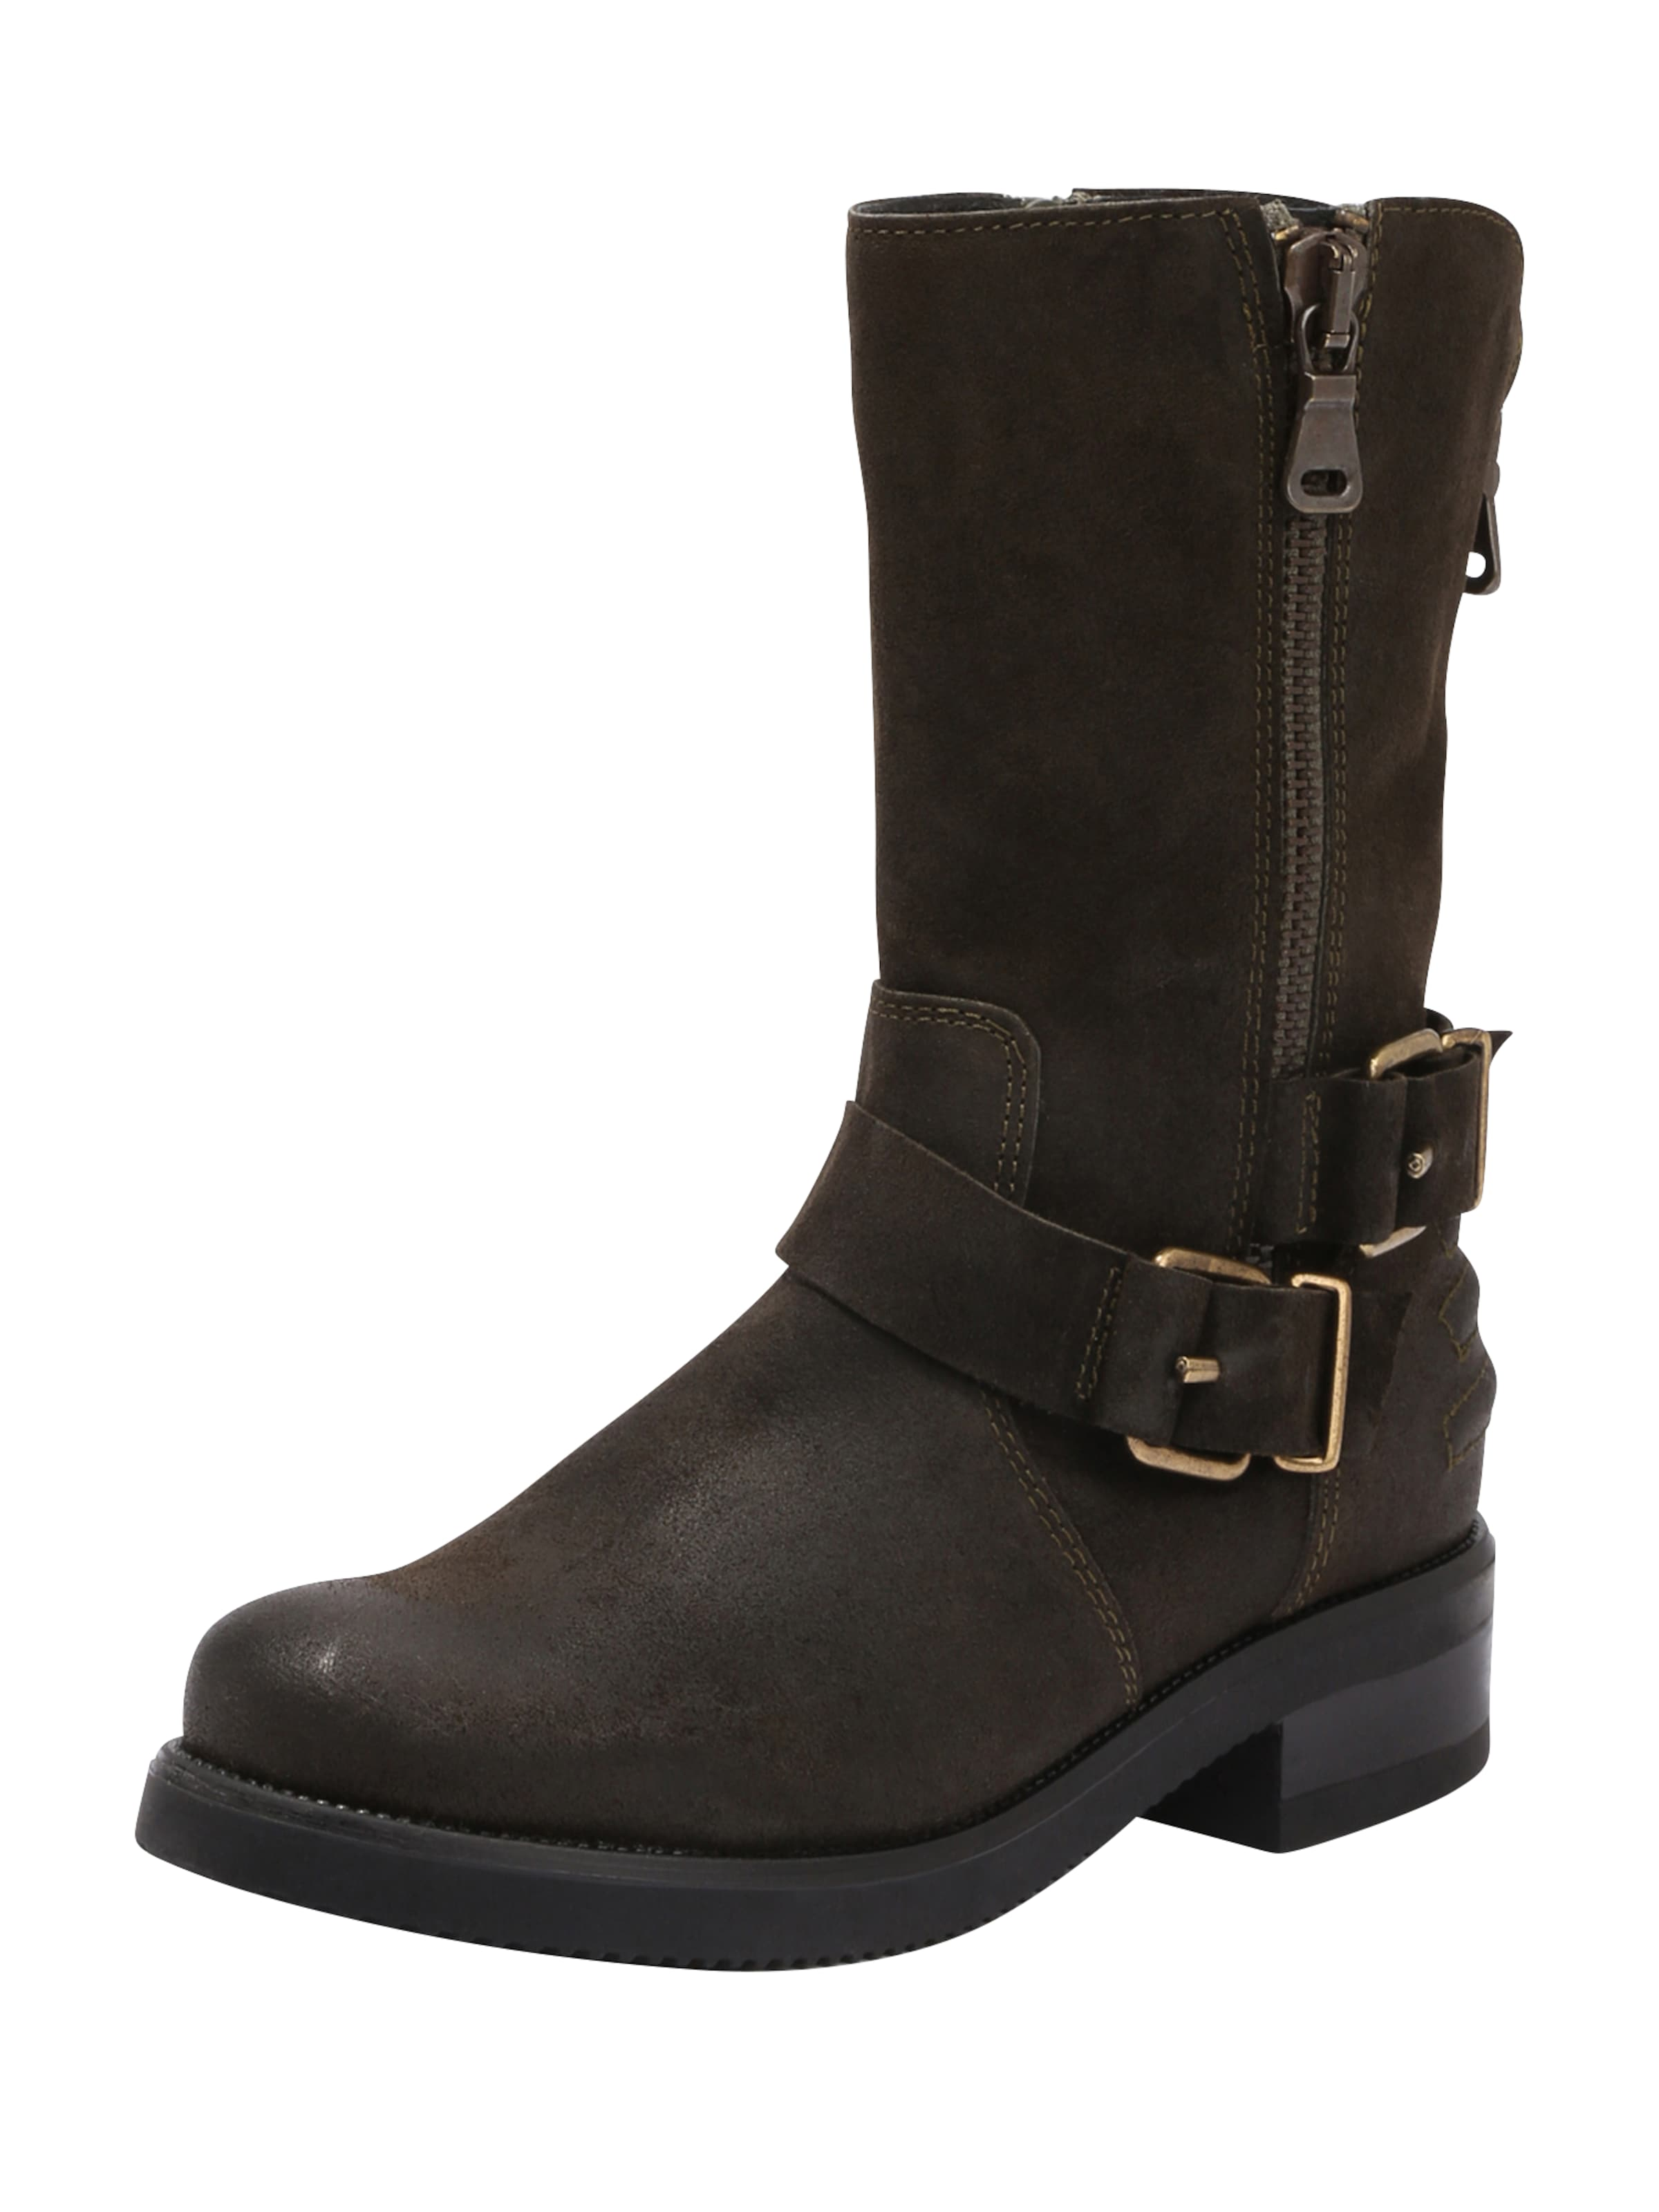 ABOUT YOU | | YOU Boots  KYRA f1455f